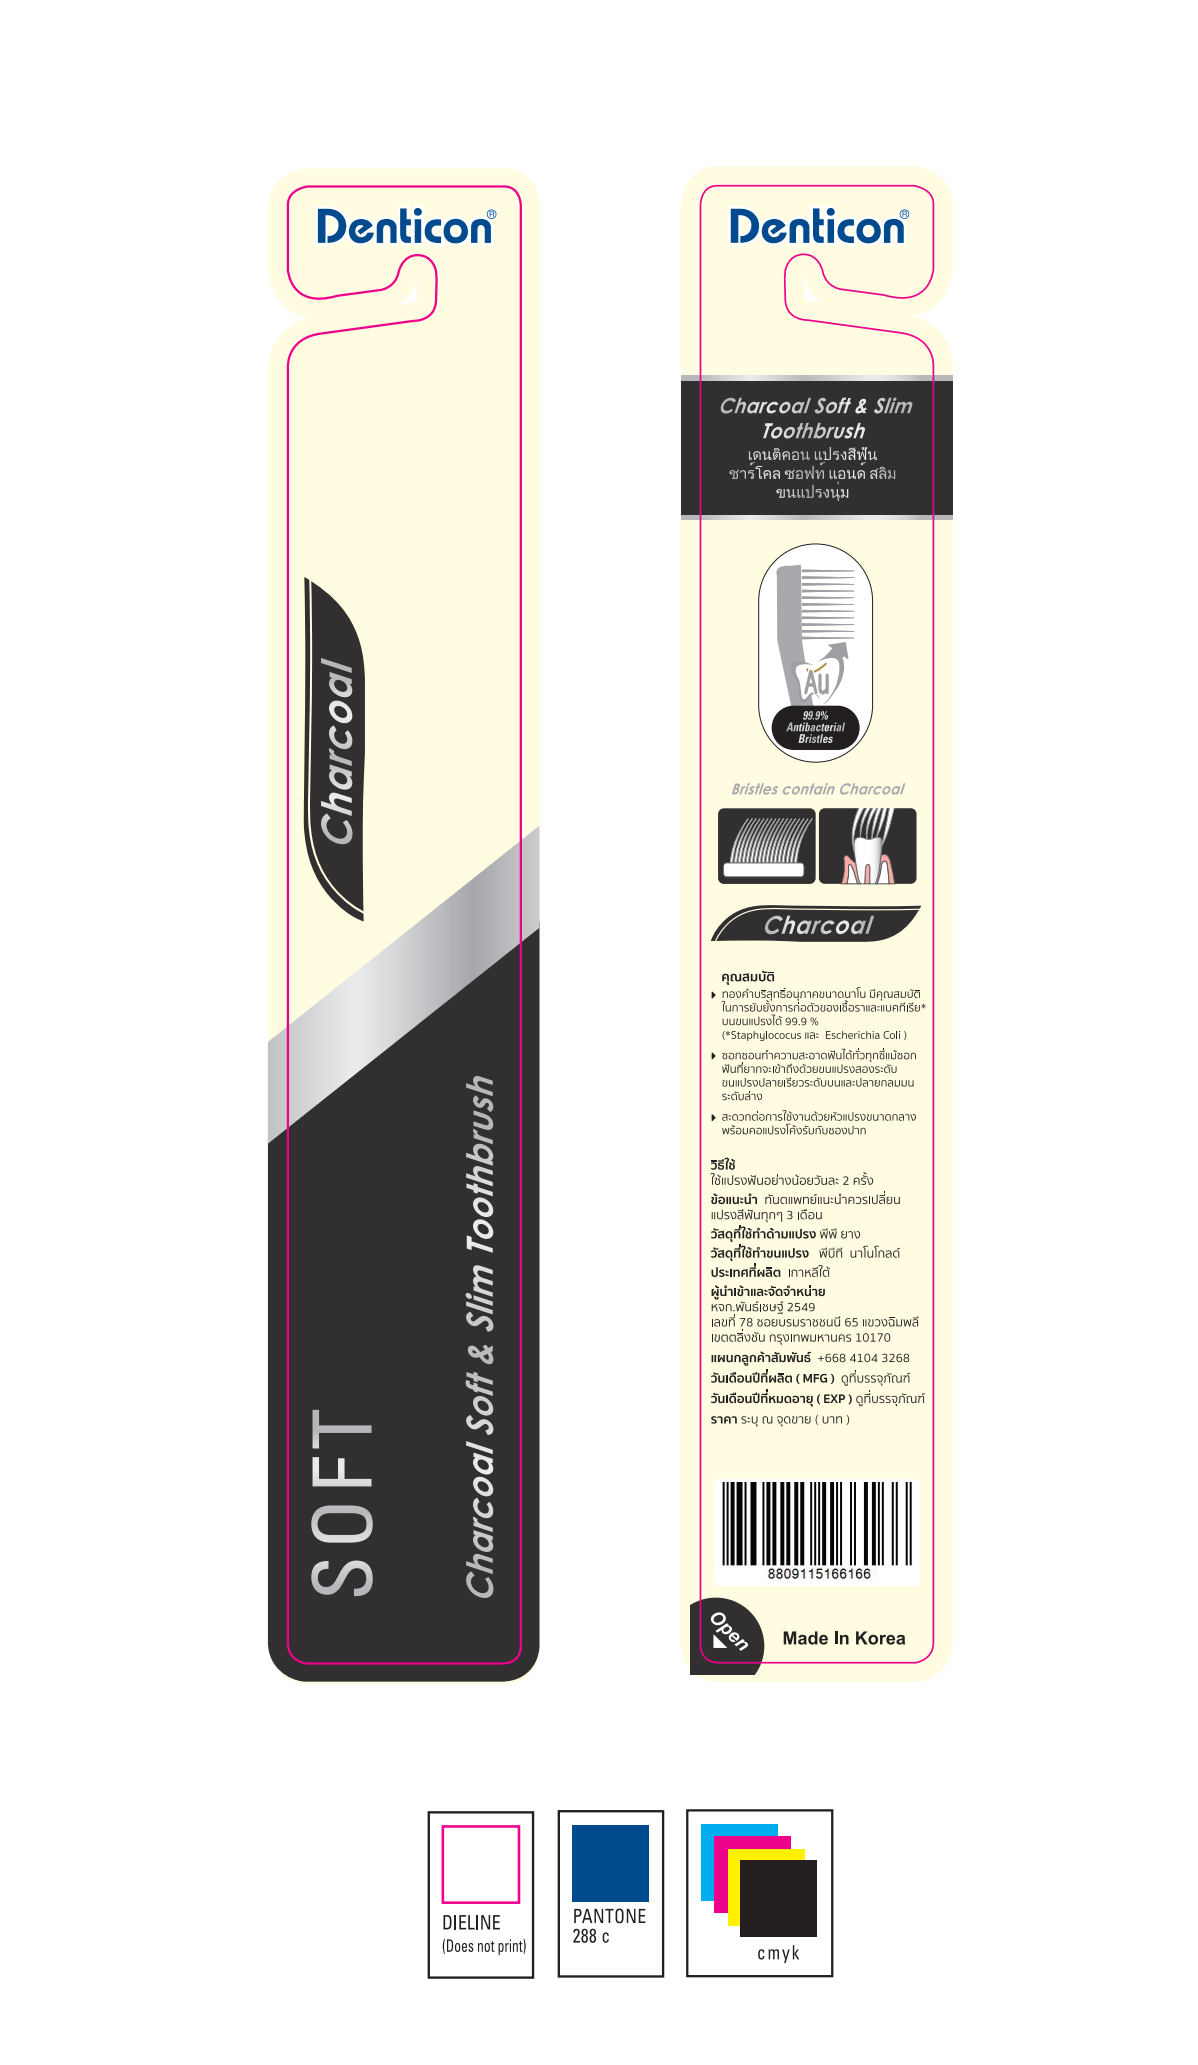 Denticon charcaol refersh the package design